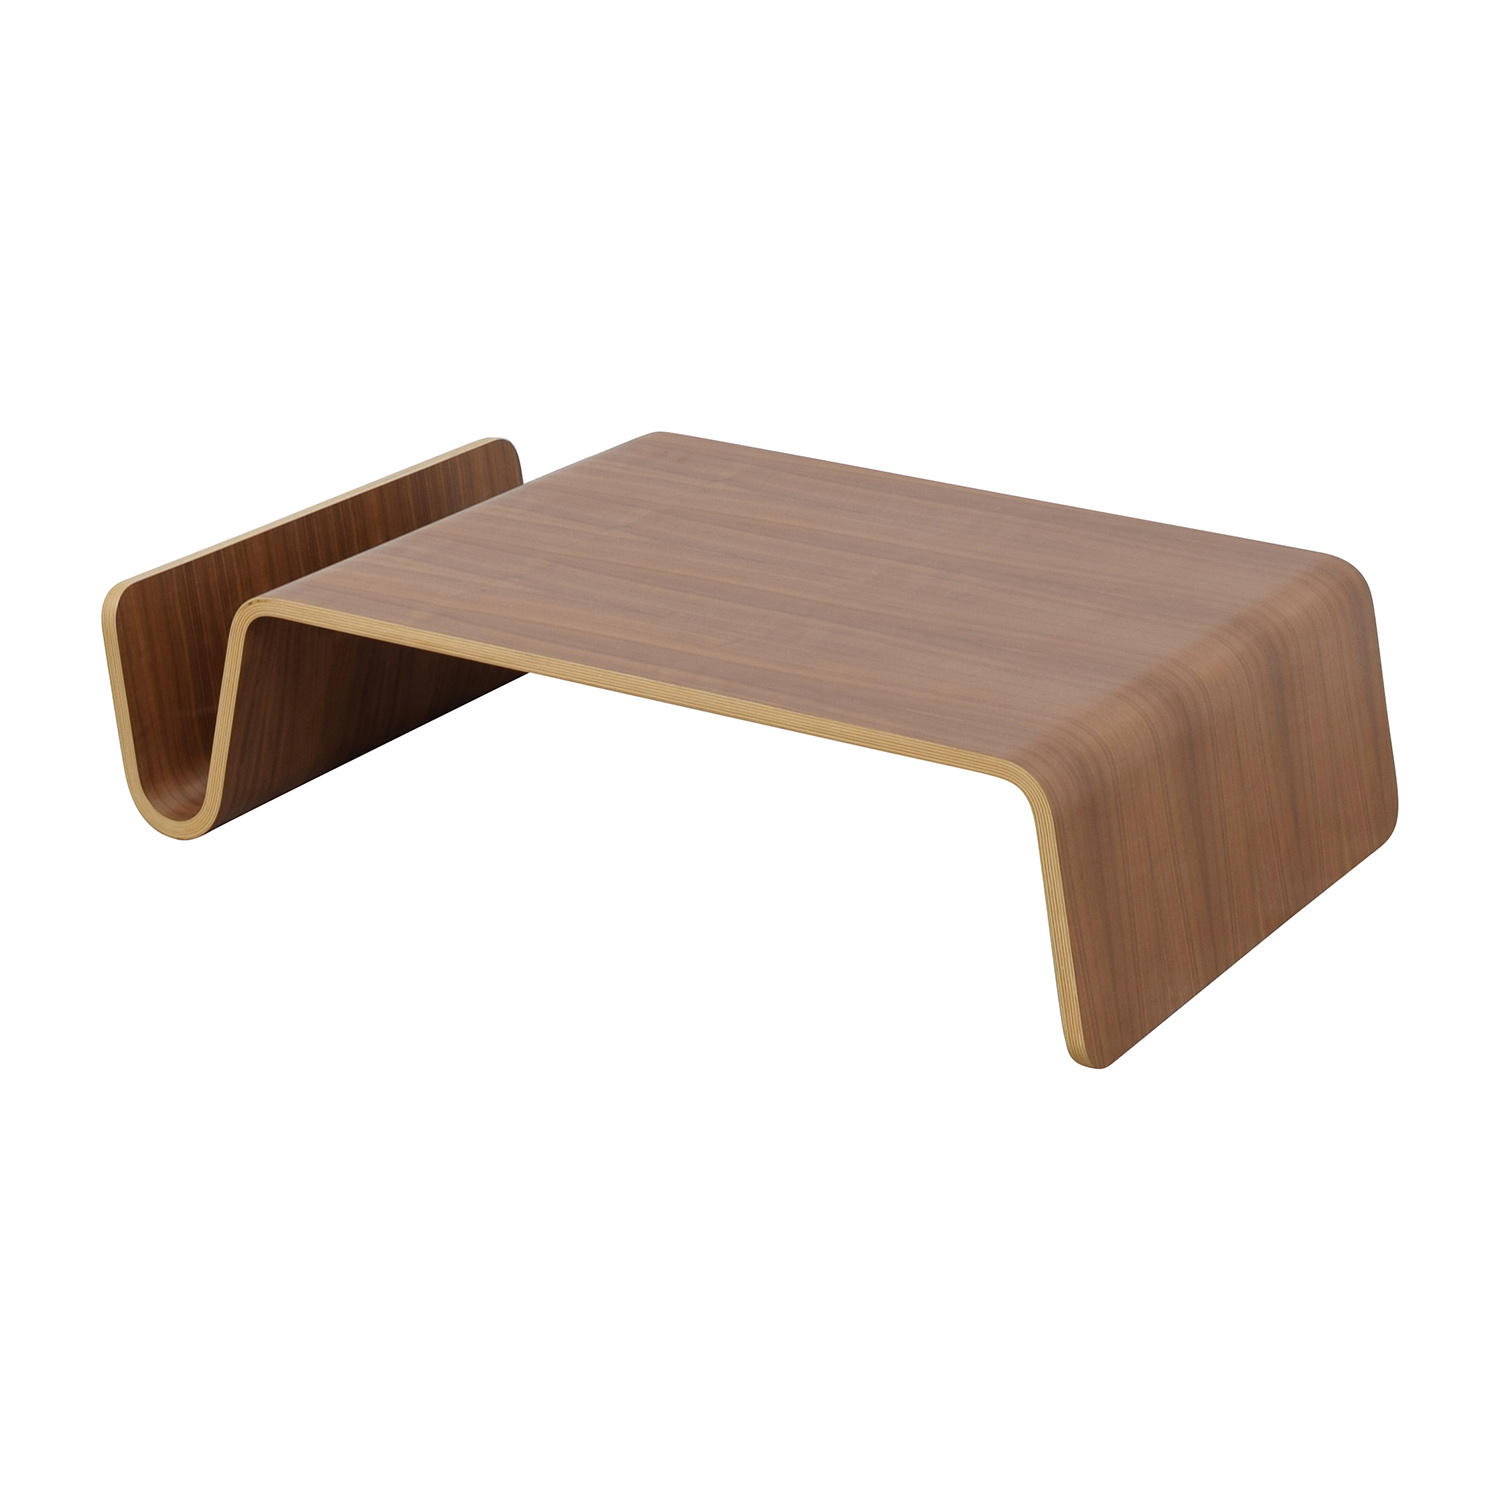 69 Off Inmod Inmod Scando Coffee Table Tables